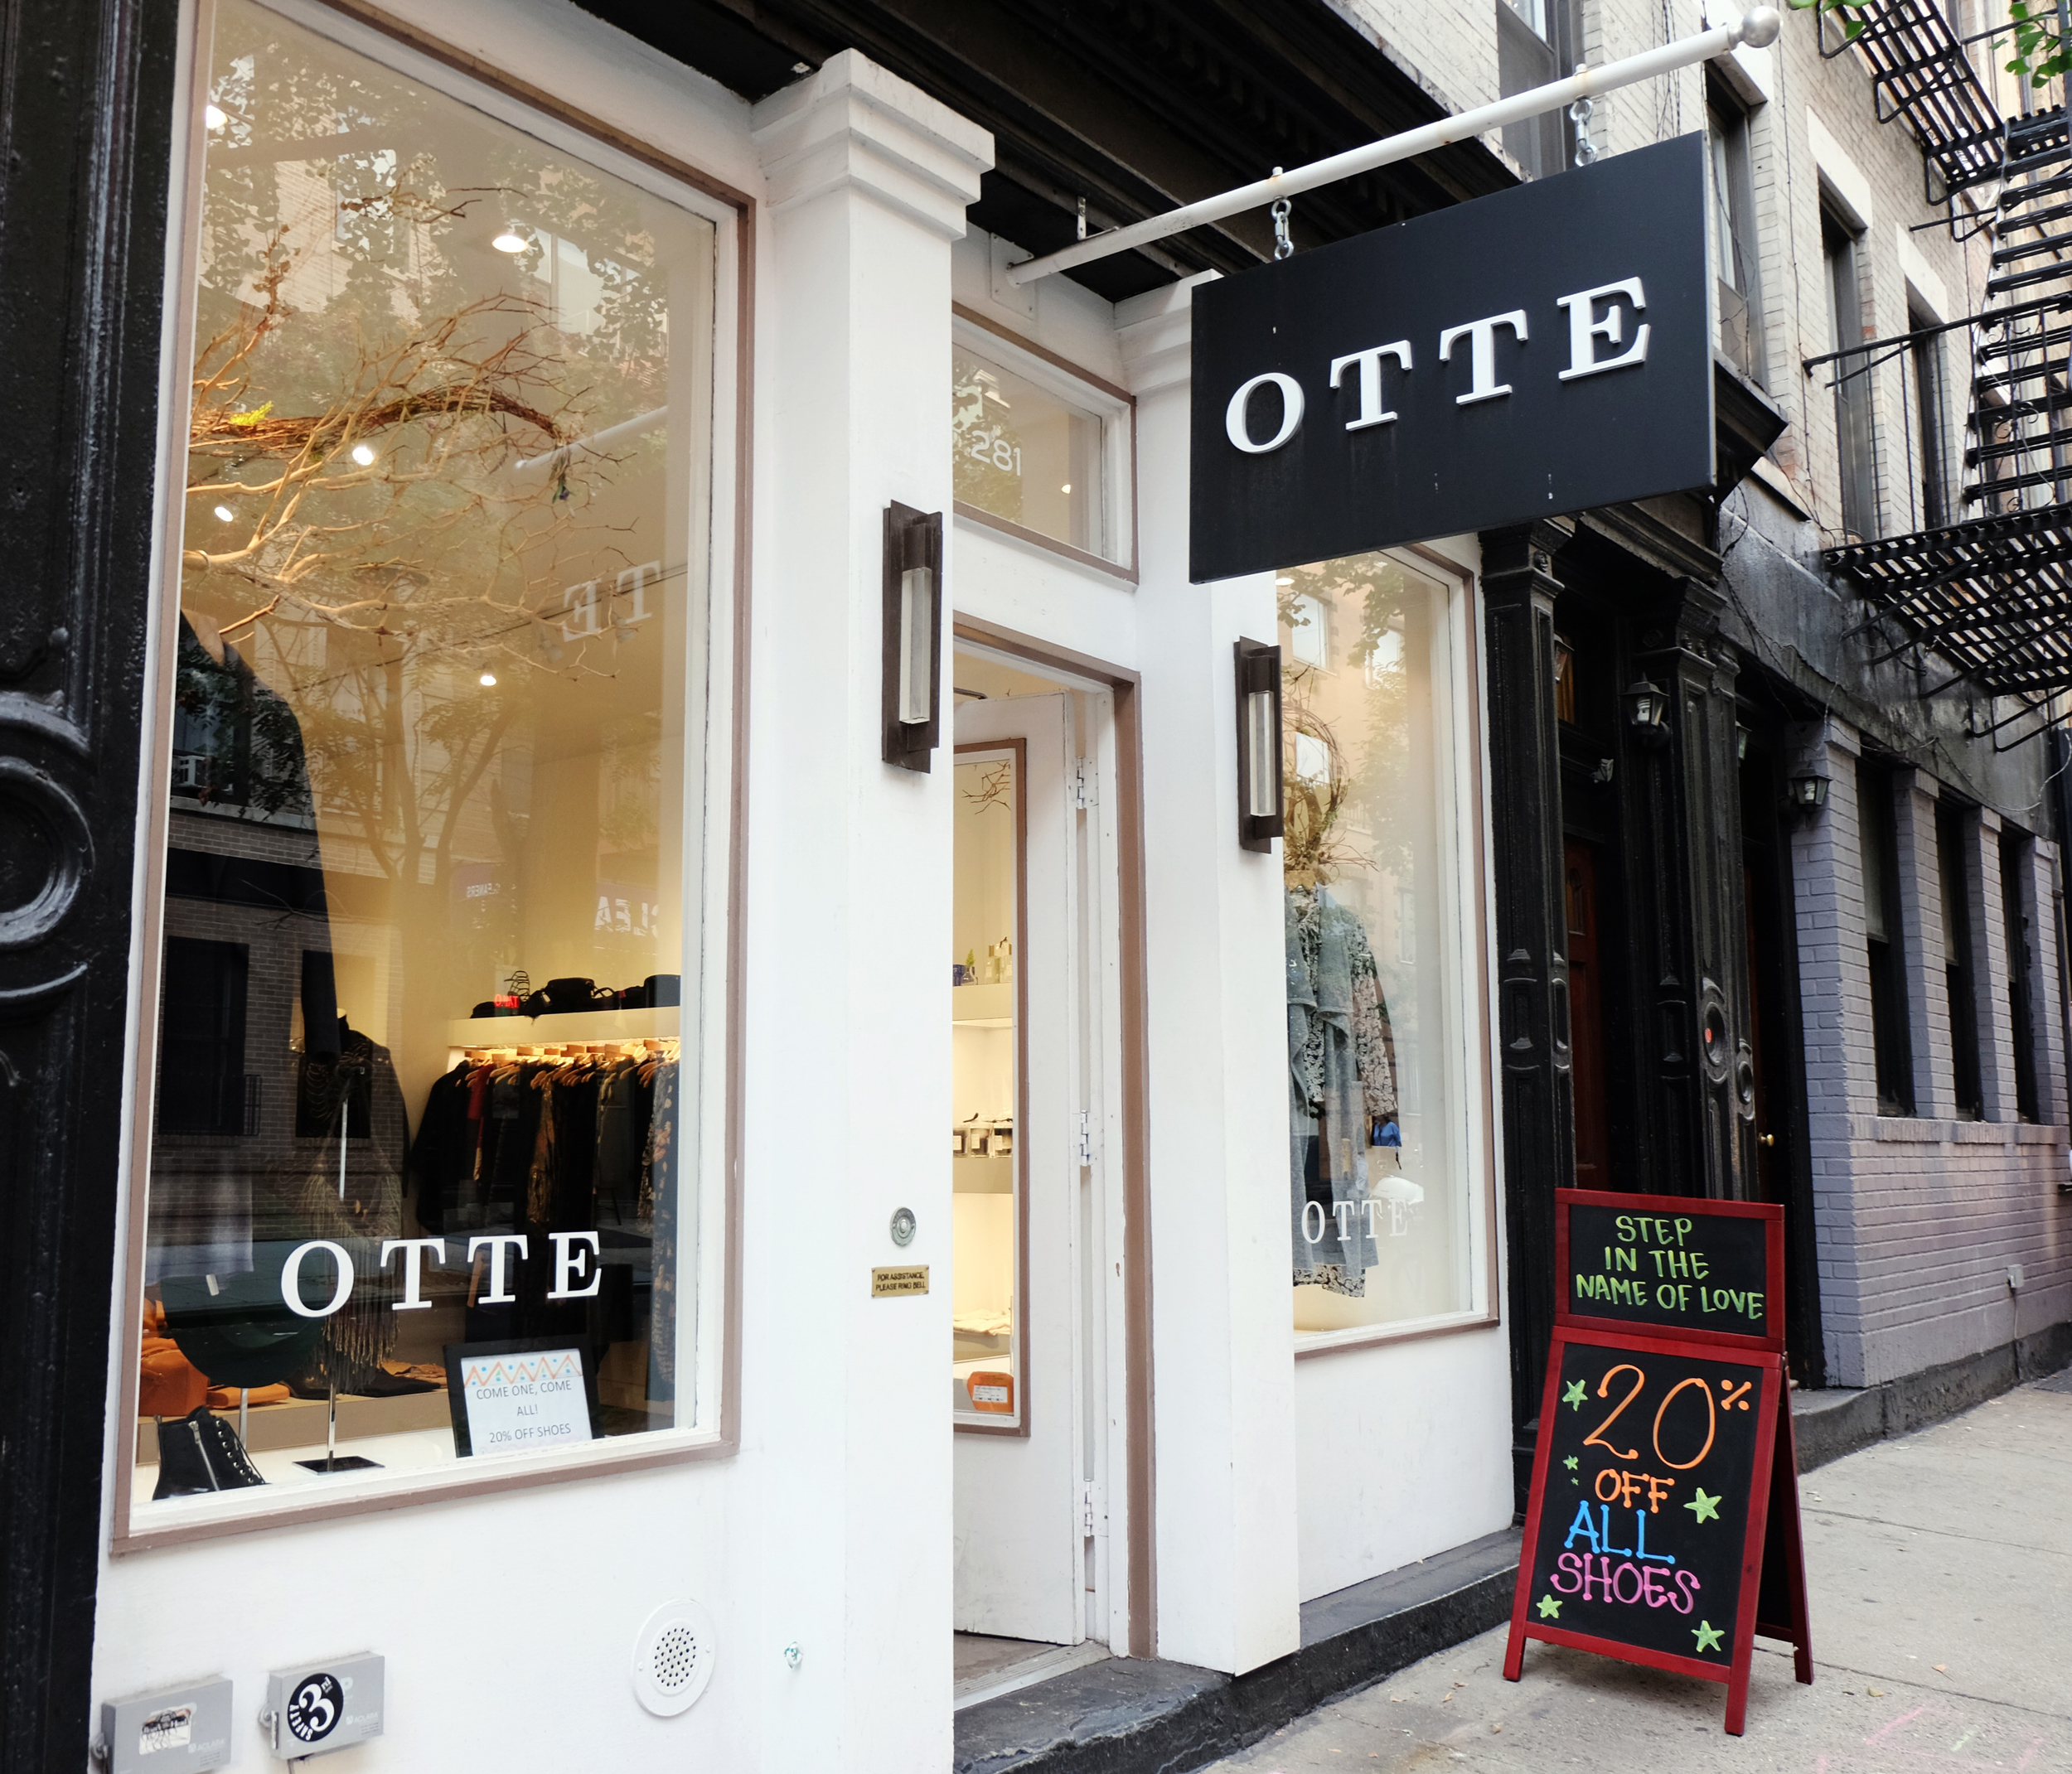 Otte  / 281 Mott Street. New York, NY 10012 / 212-925-0200  Otte houses a variety of brands. The assortment ranges from J Brand jeans to One teaspoon denim,Organic by John Patrick to ATM,Margaux Launberg to See by Chloe, ALC to BLK DNM. I like to pop my head in once in a while to see what's going on.